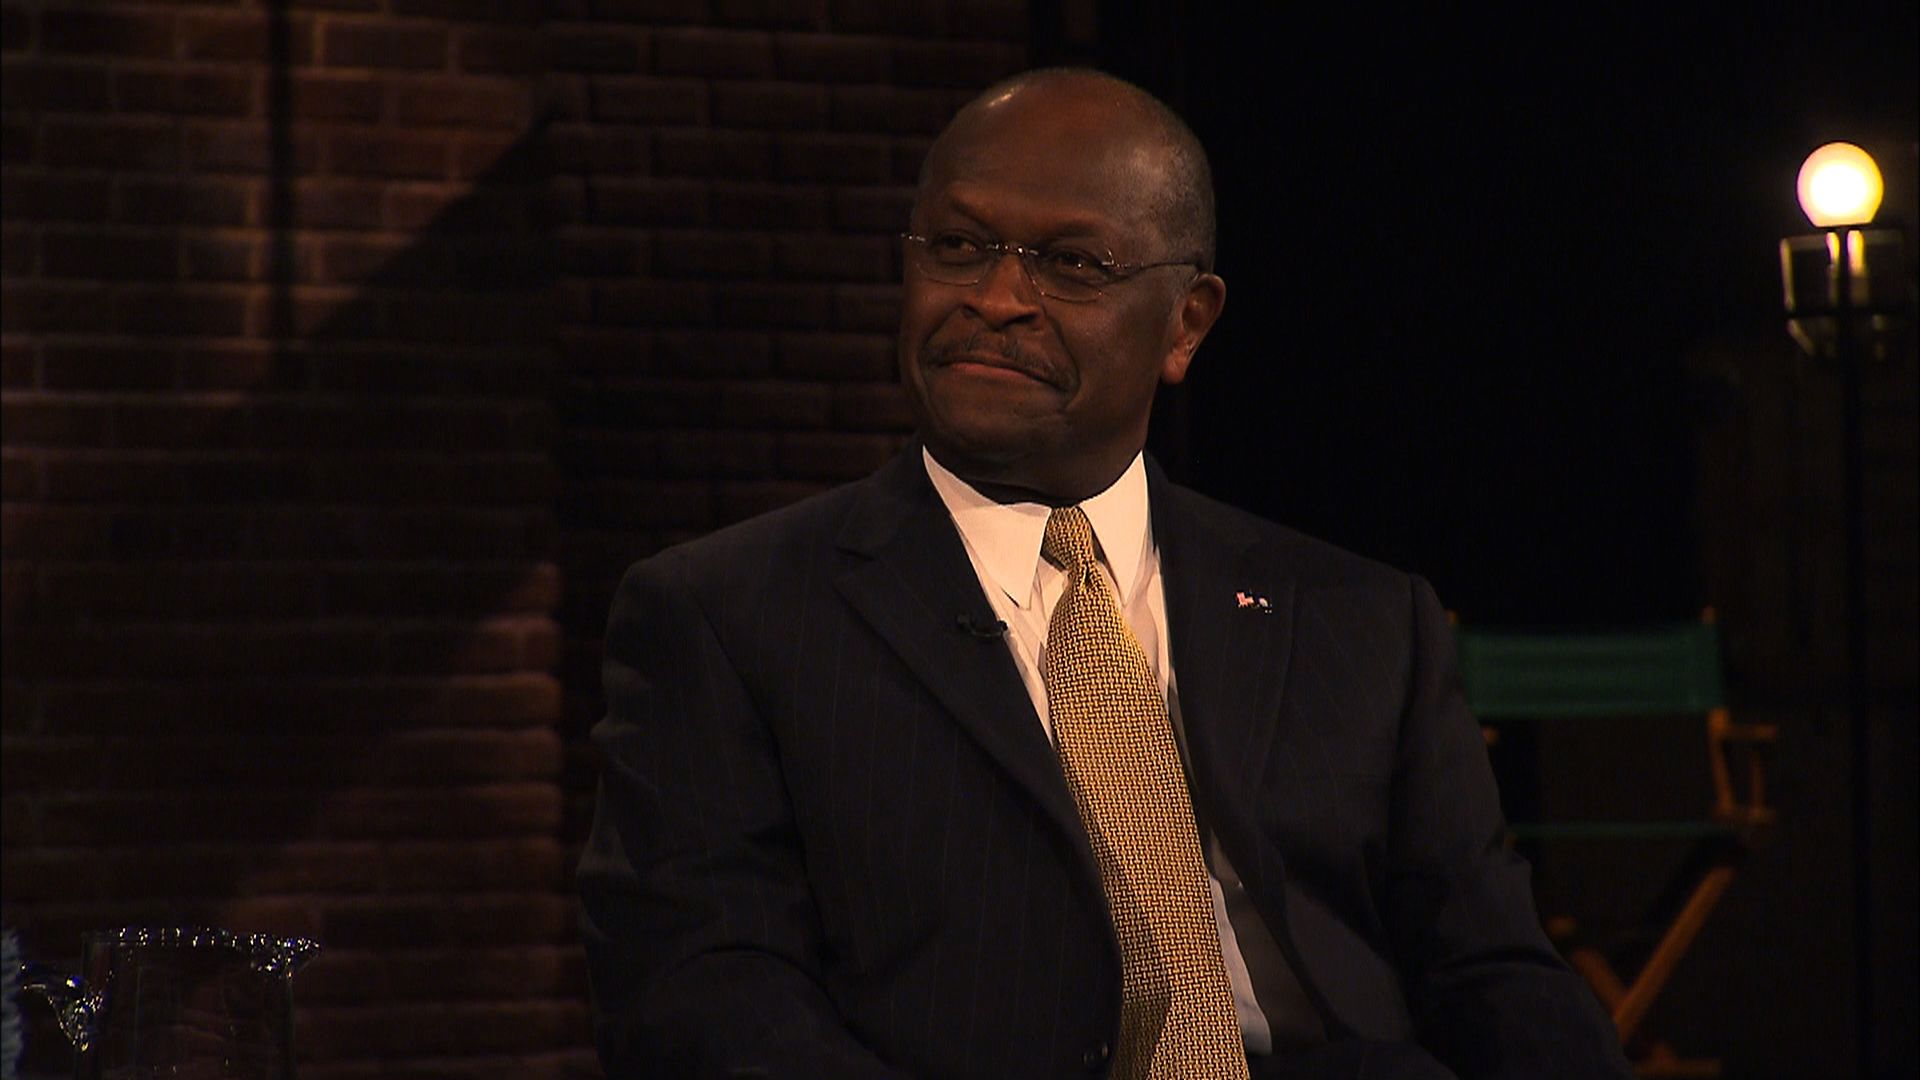 Inside the Political Curtain with John Oliver - Herman Cain - The Daily Show with Jon Stewart ...